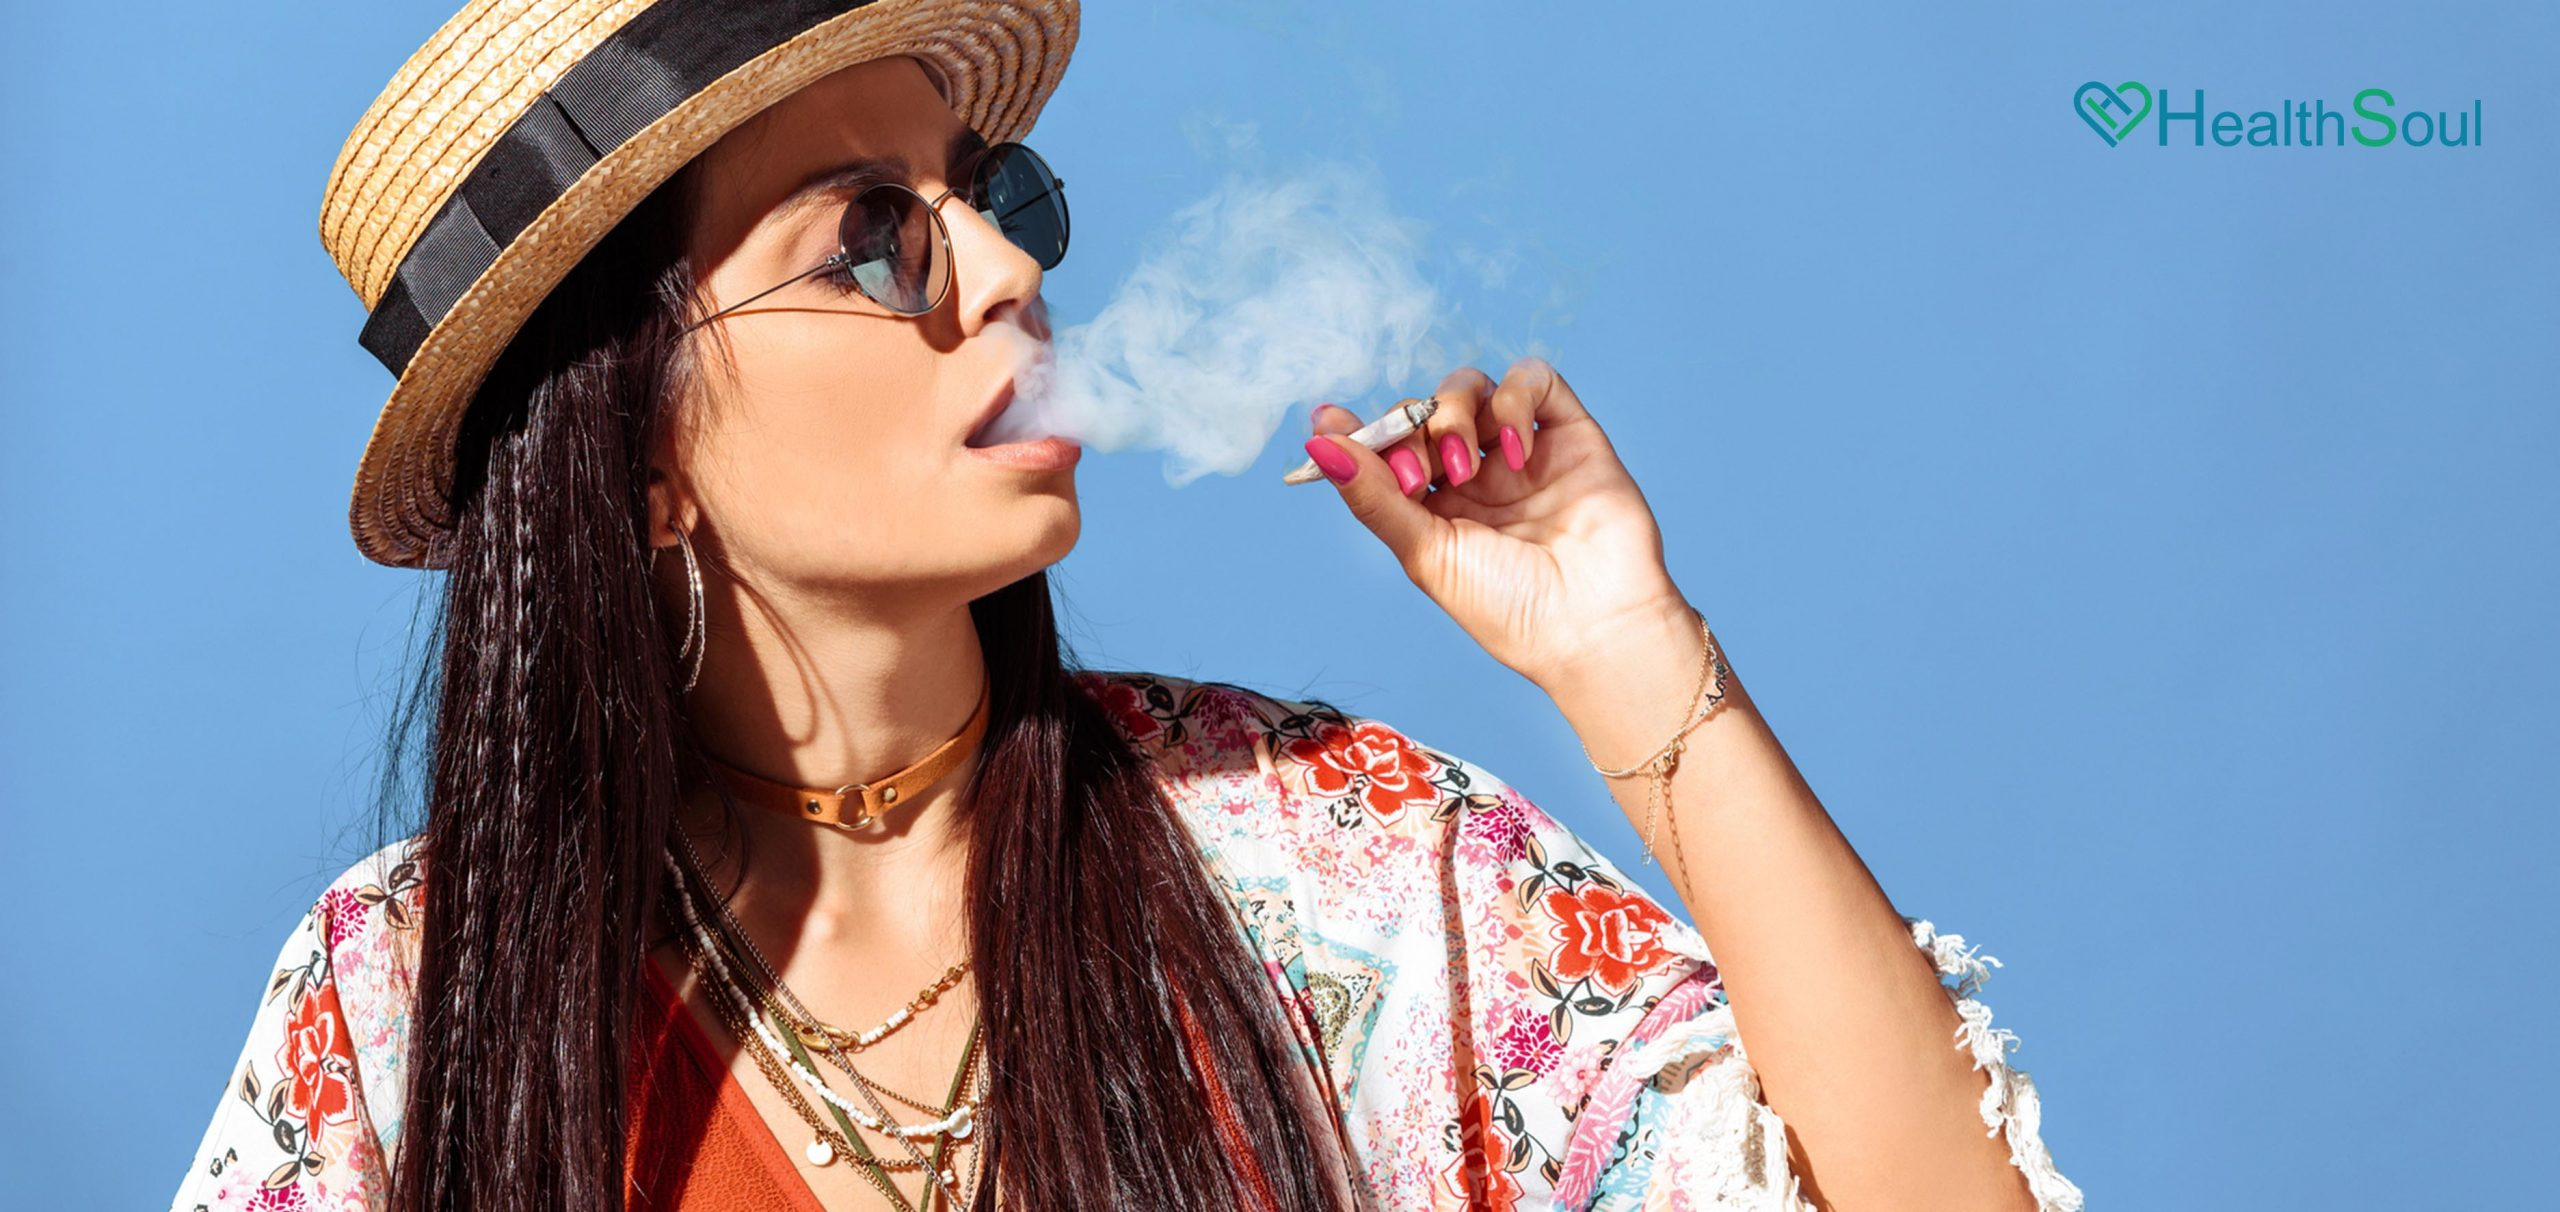 Deciding To Quit Smoking Is A Smart Move At Any Age | HealthSoul